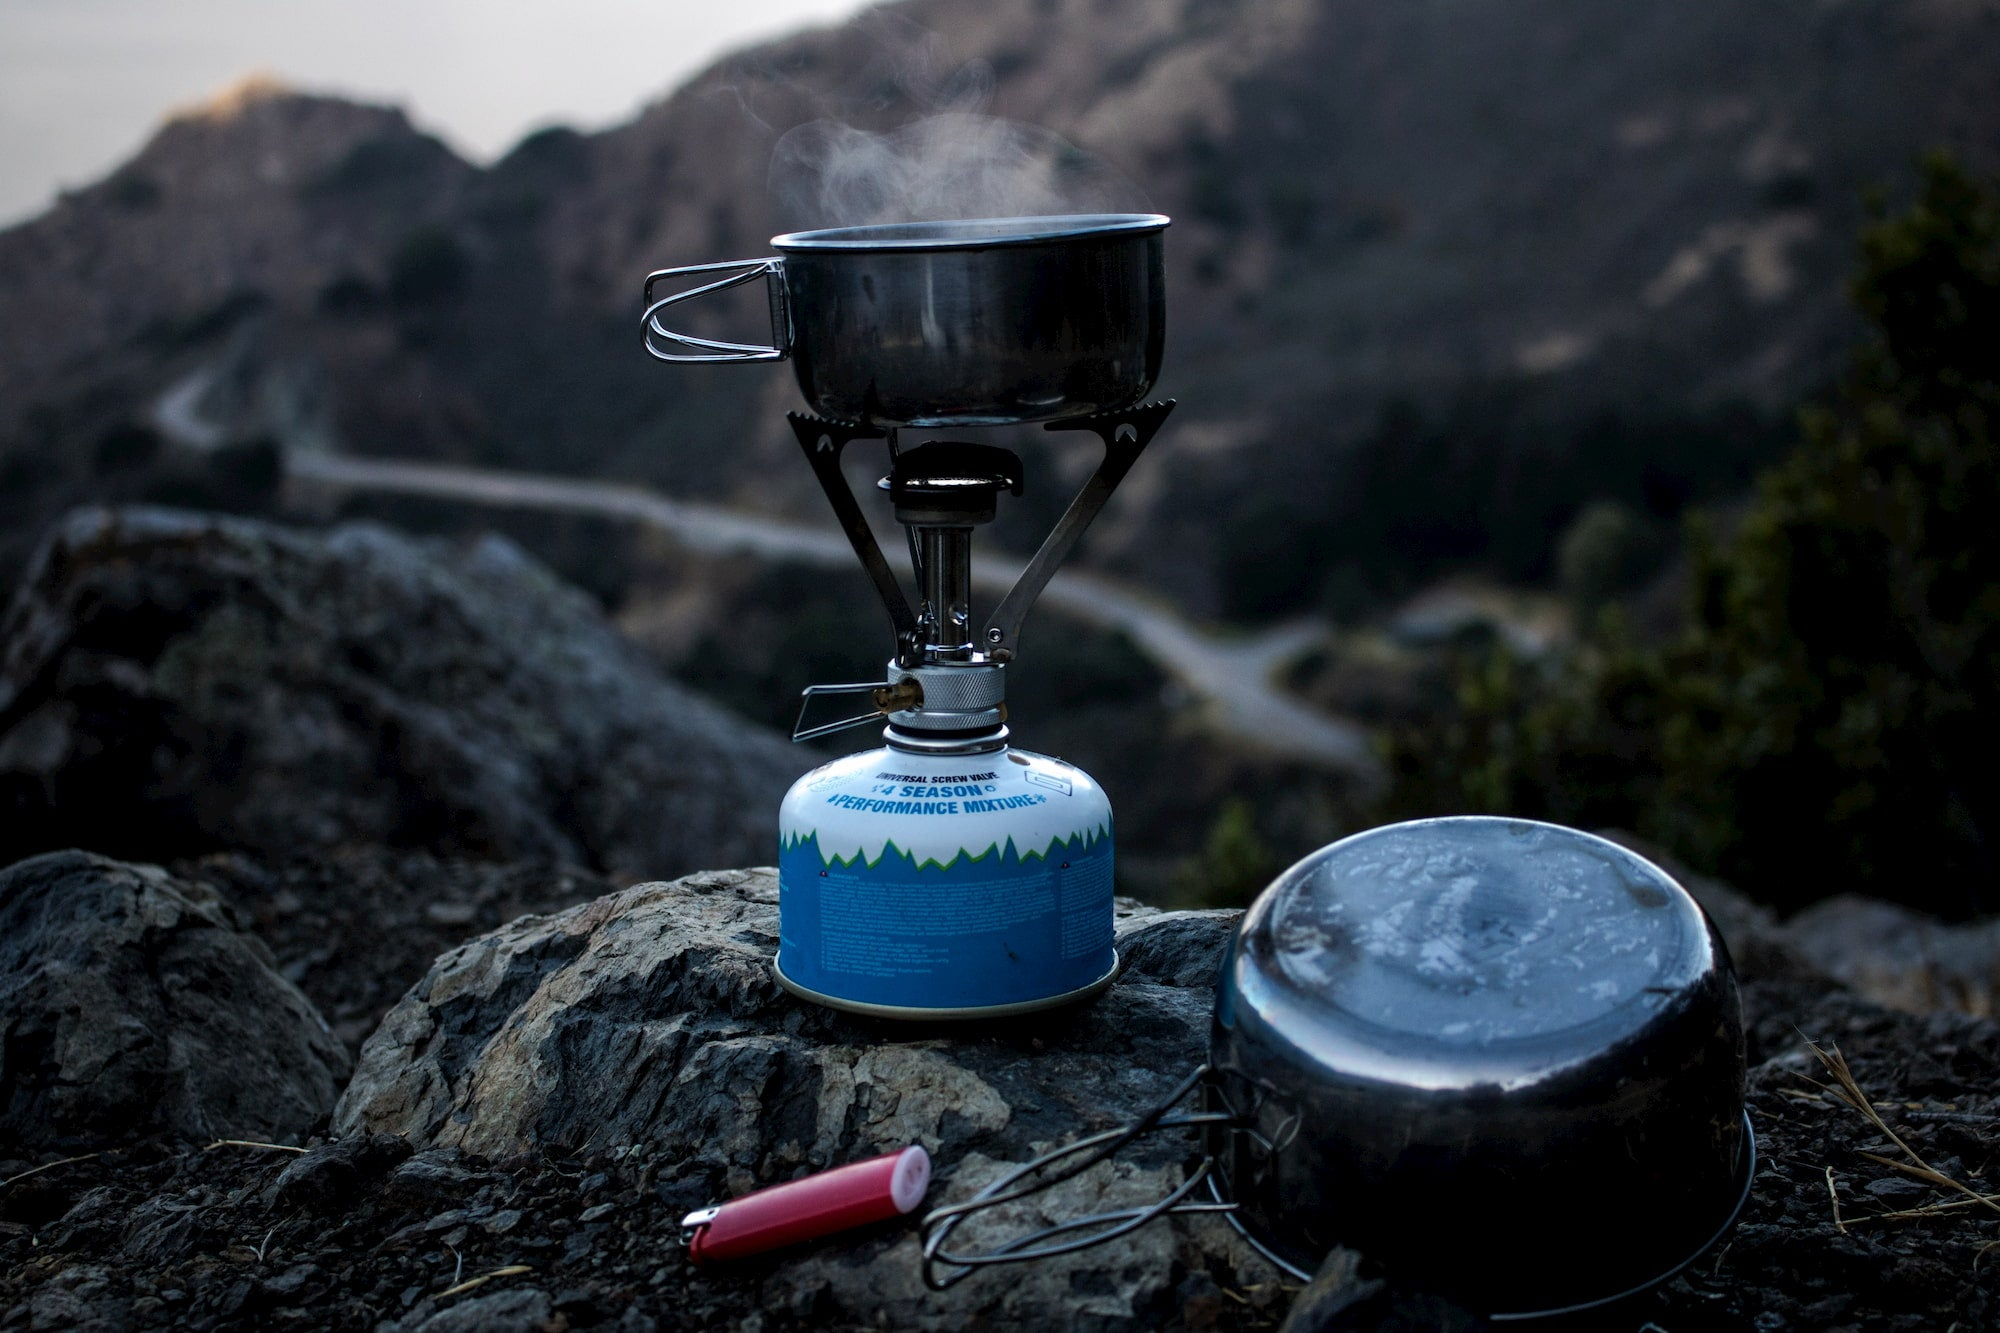 Water boiling in a backcountry camp stove.